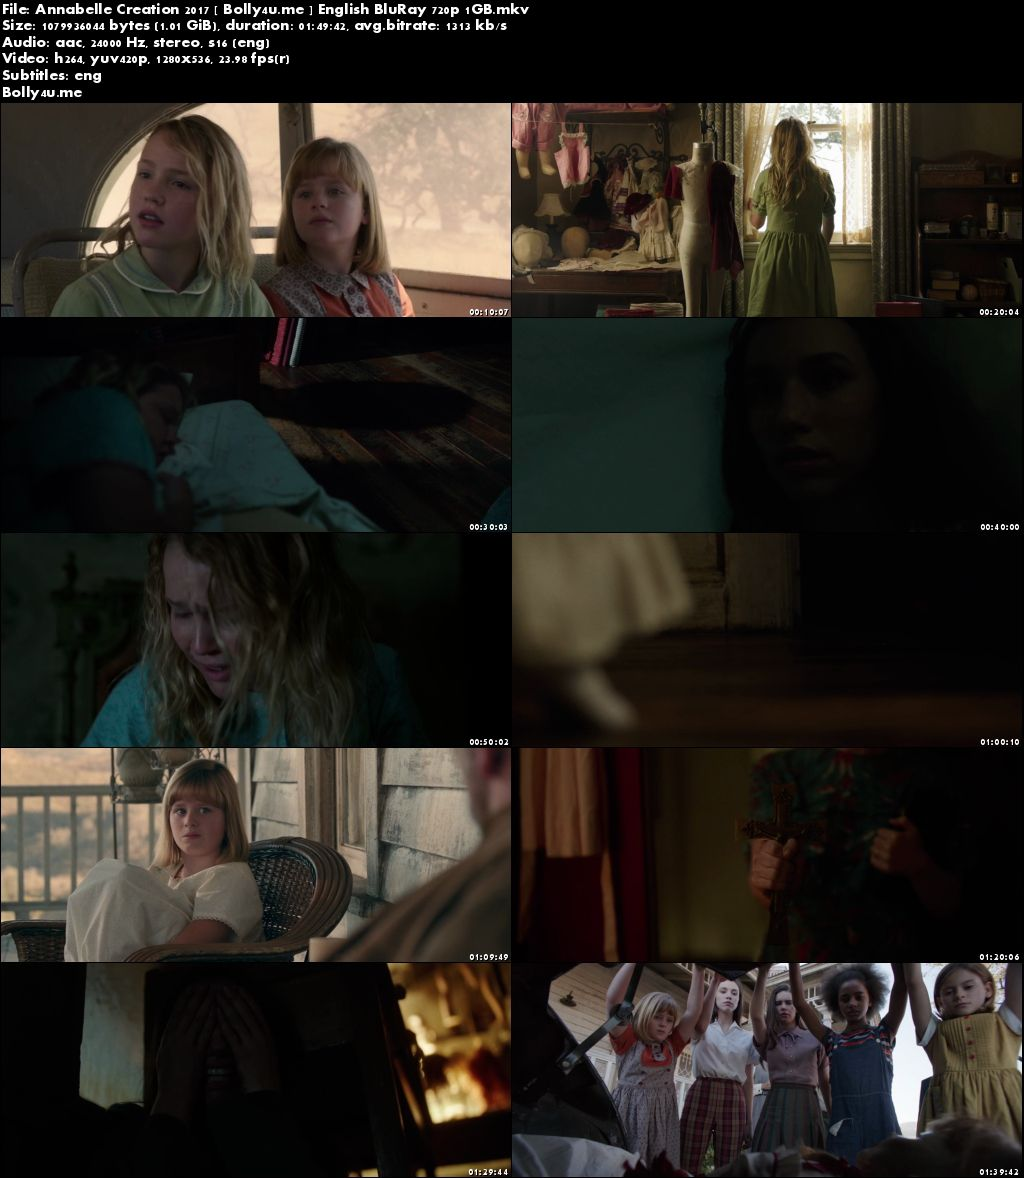 Annabelle Creation 2017 BluRay 1Gb Full English Movie Download 720p